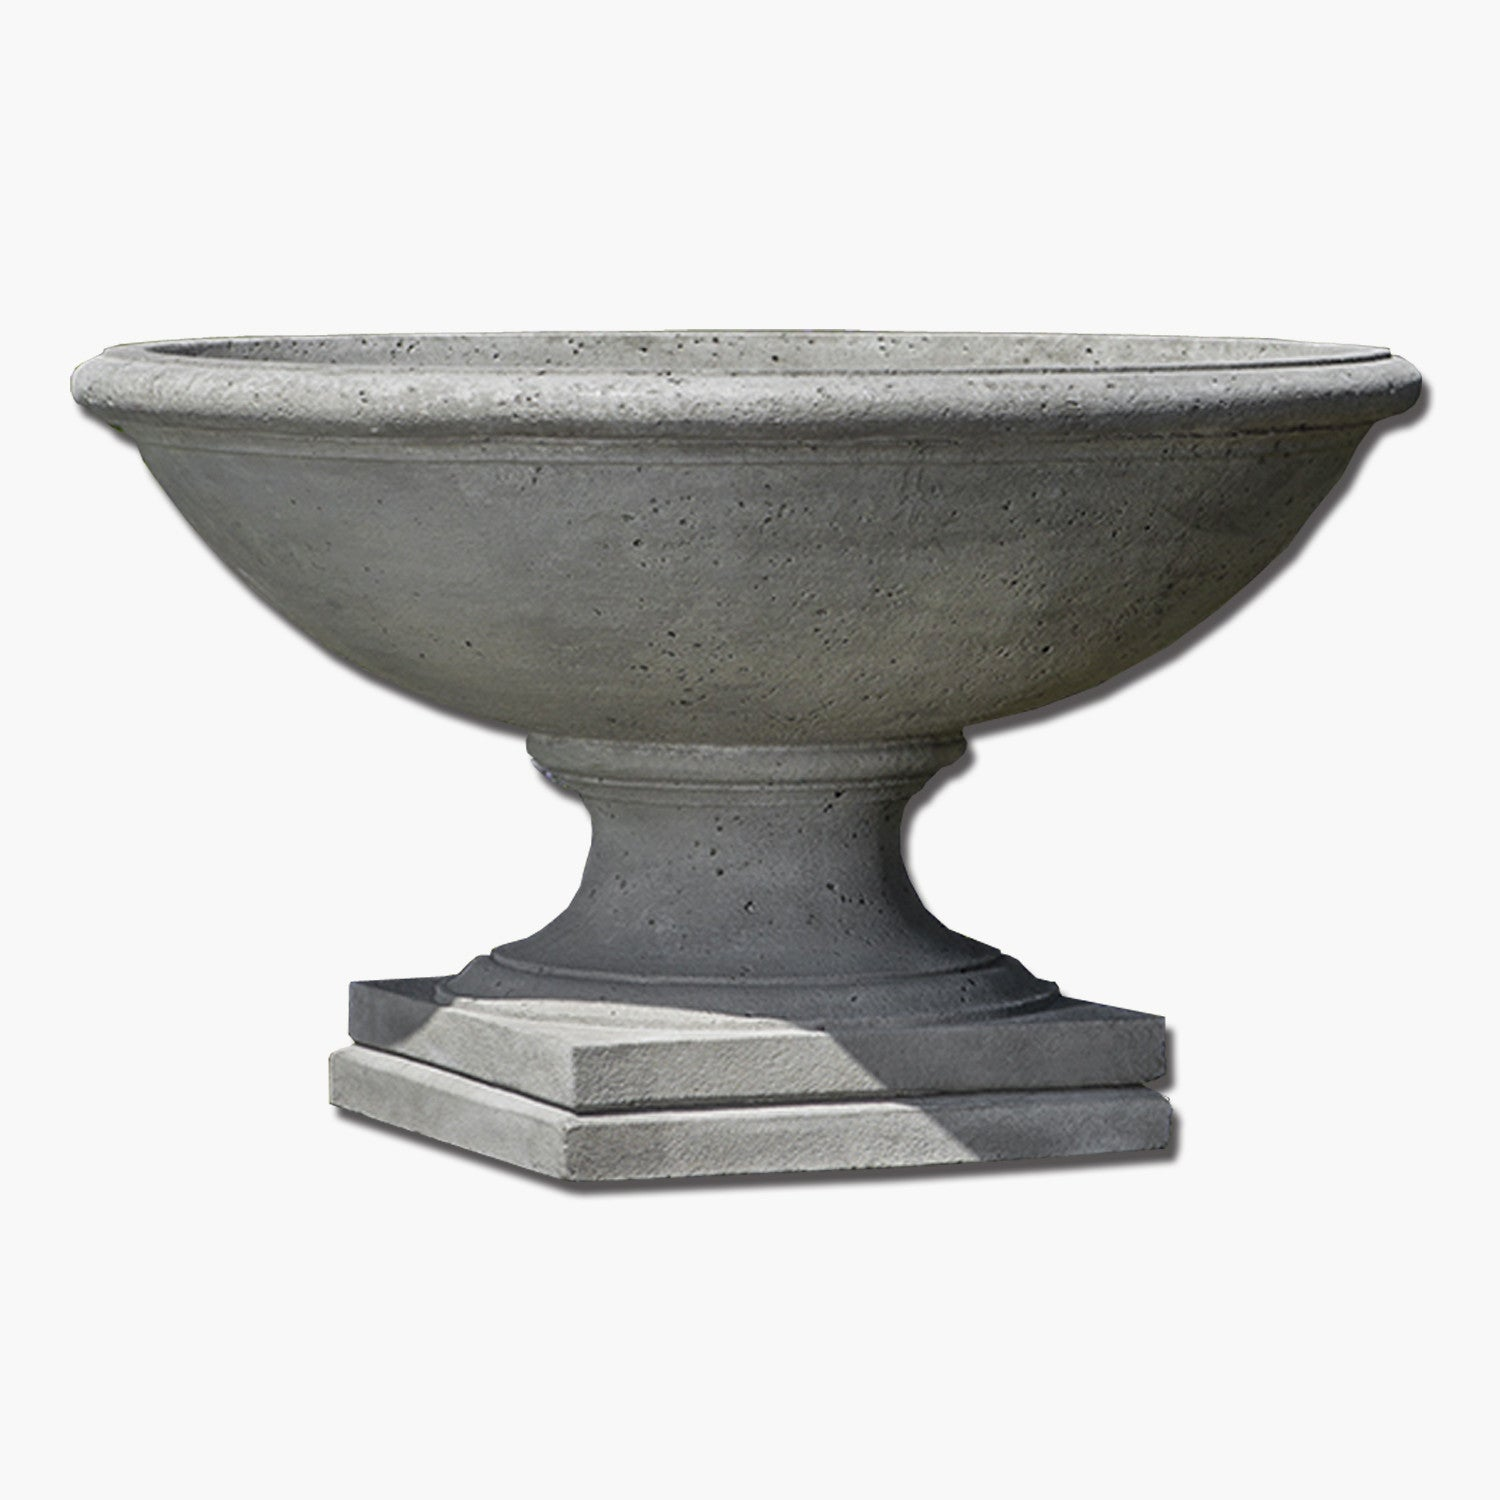 stone planters black planter cast on img urn fluted pedestal mpg charcoal itm entrance aged